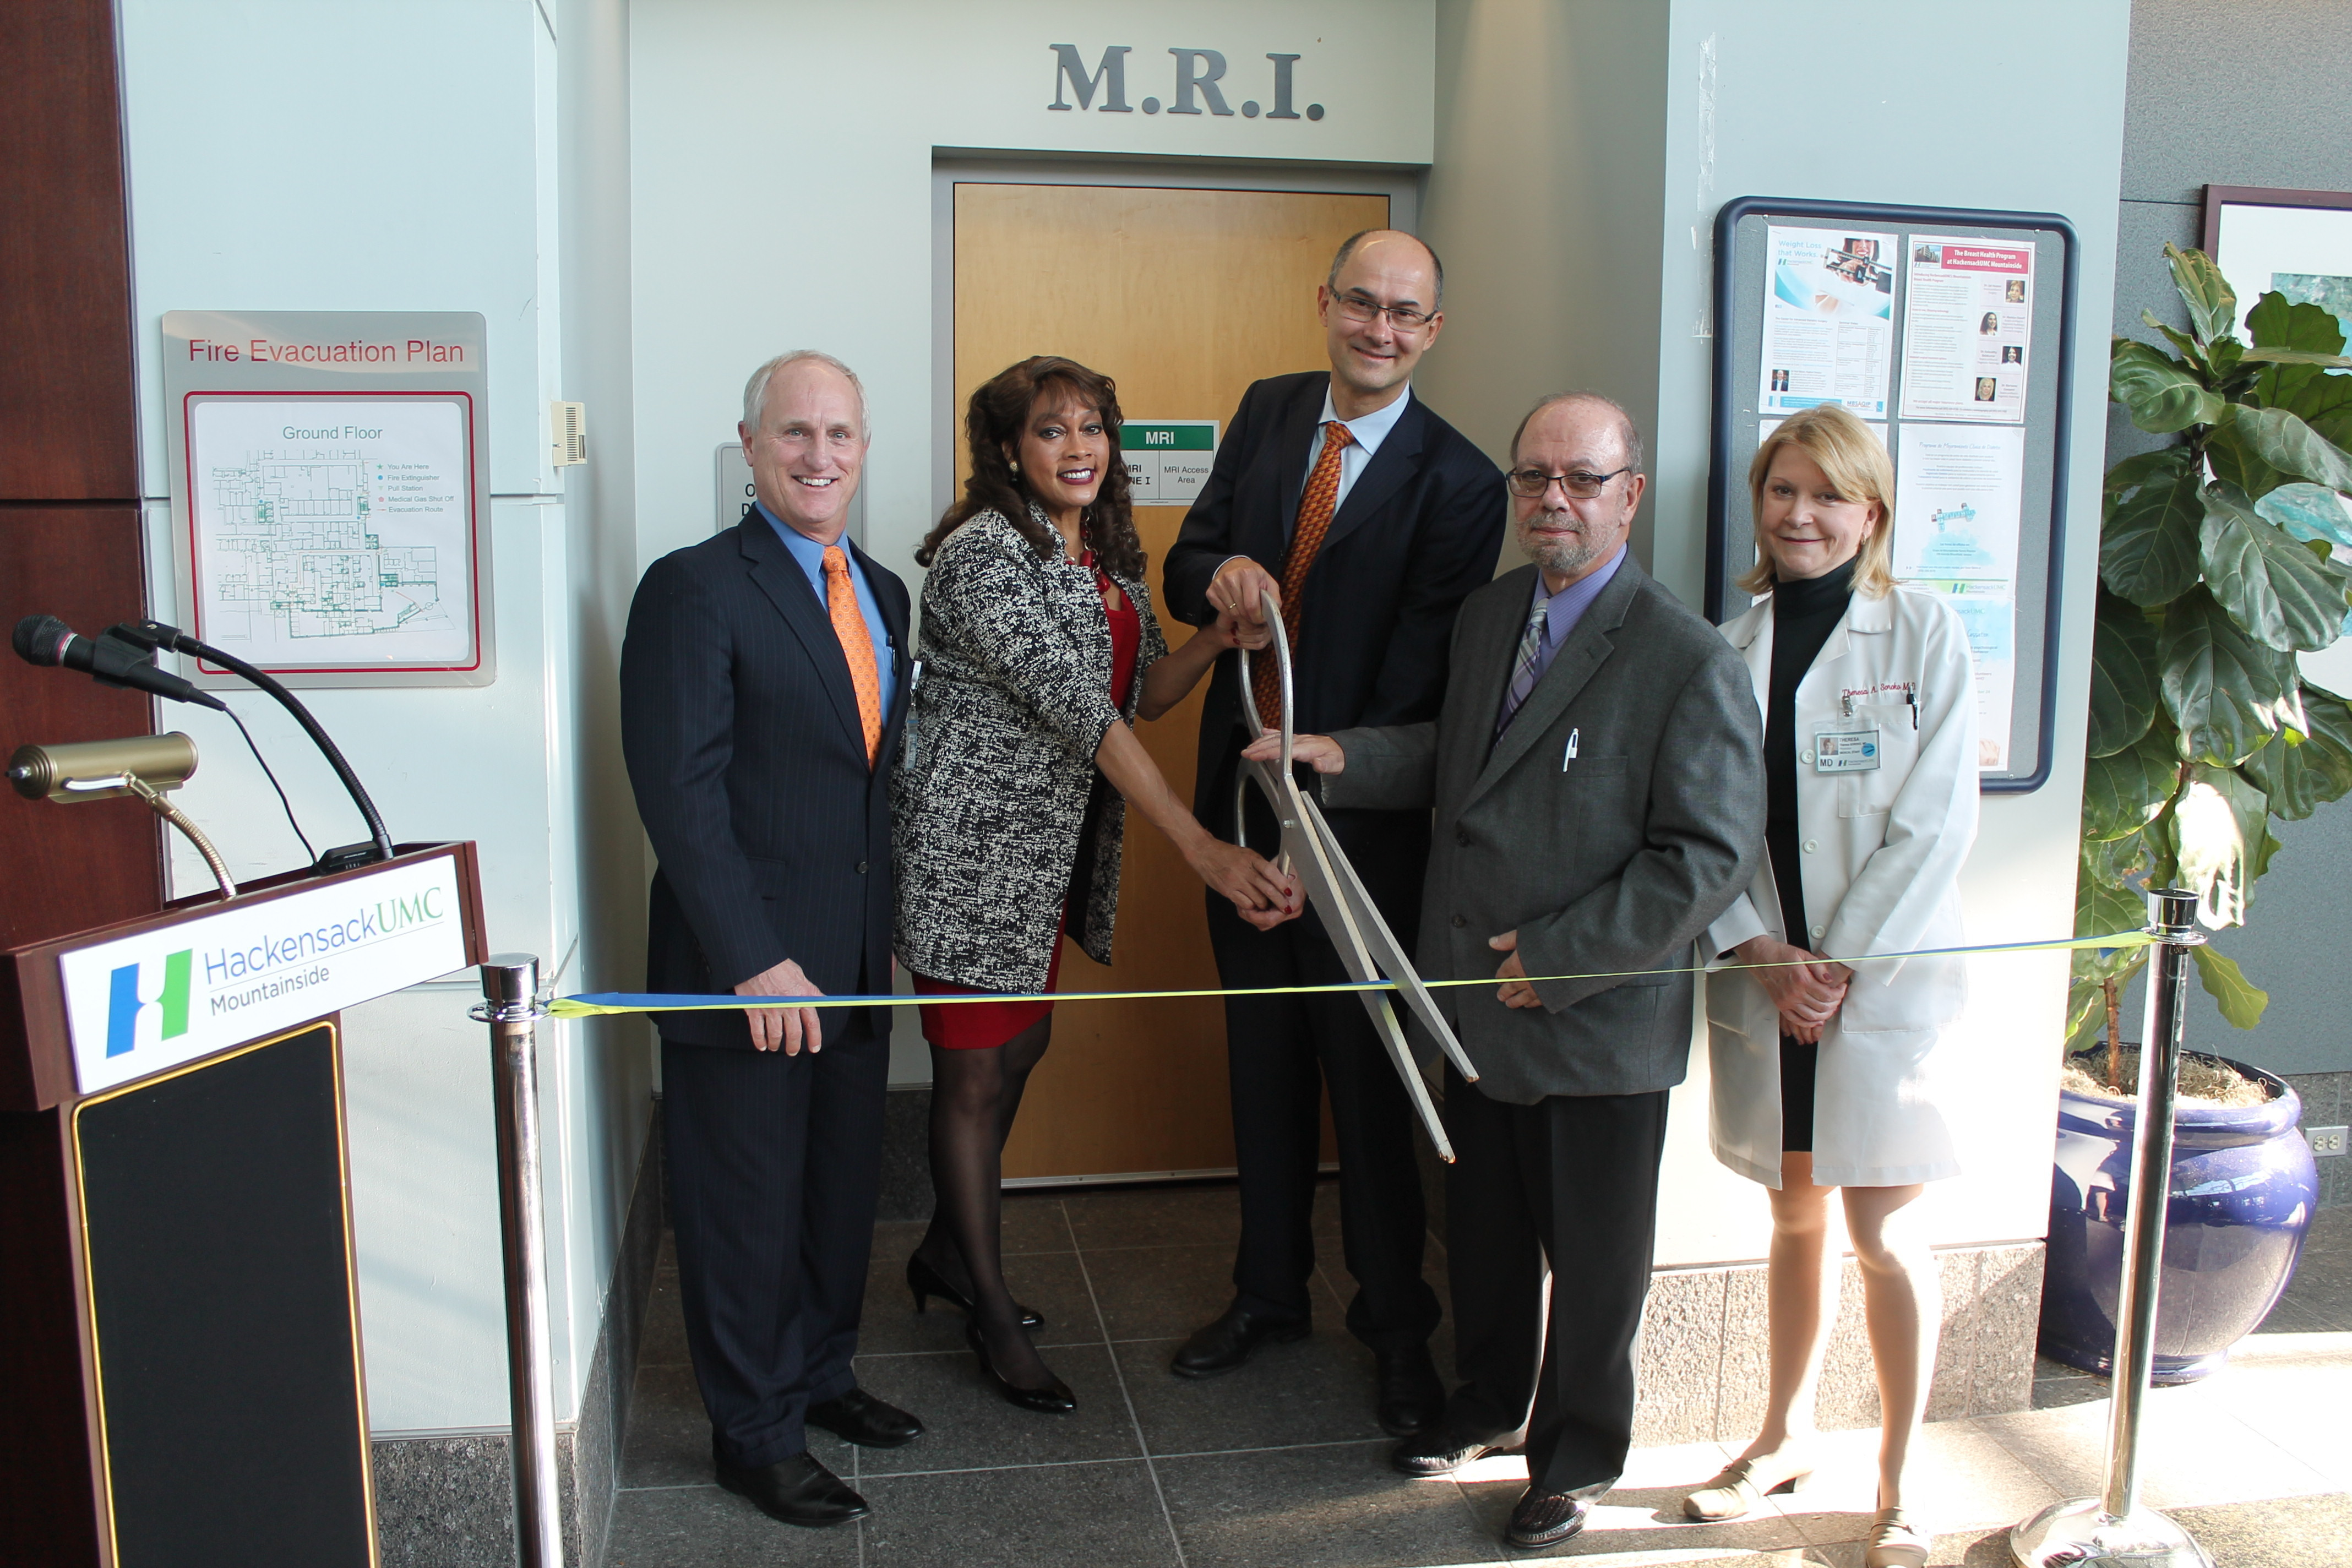 1c6623c336cdf4400c2b_MRI_Ribbon_Cutting_12.10__3_.jpg